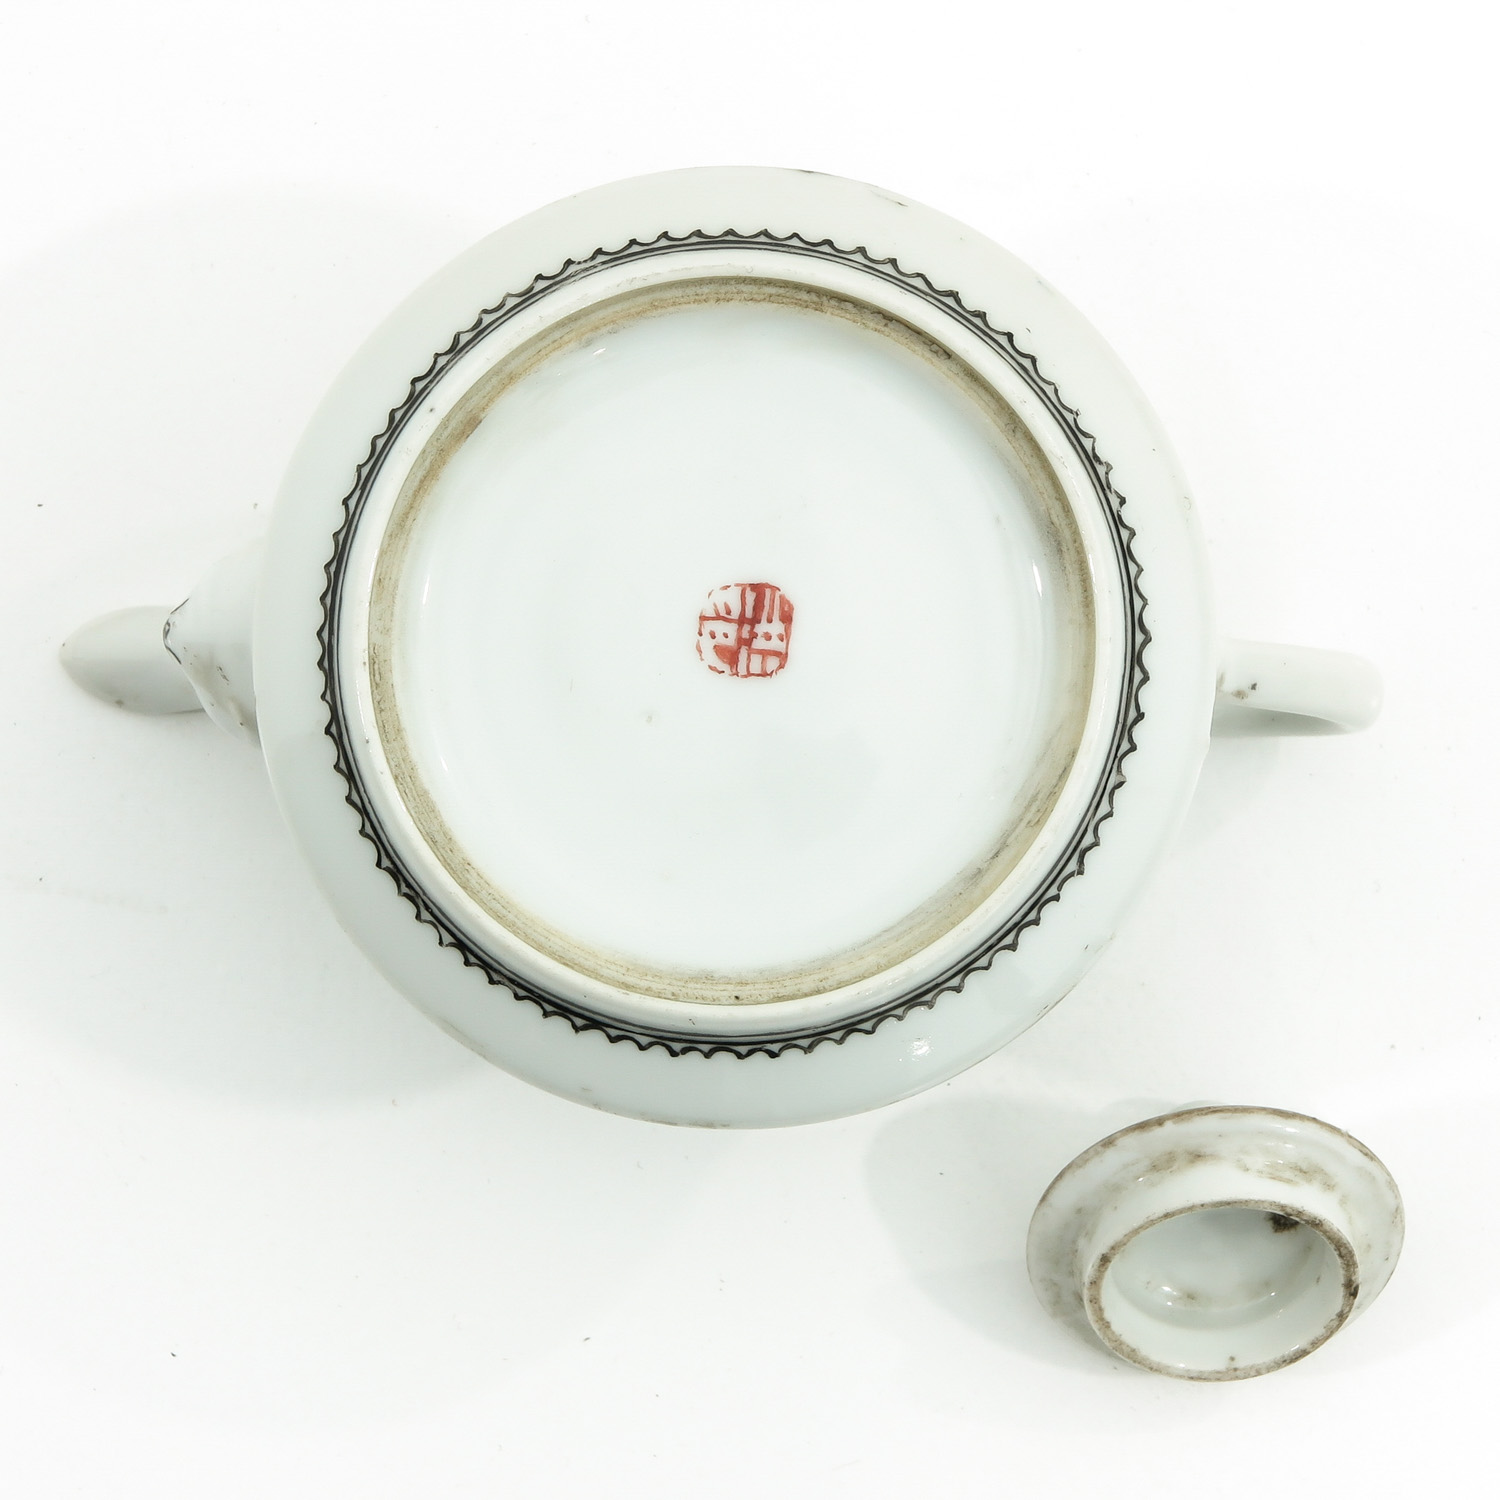 A Chinese Teapot - Image 6 of 10